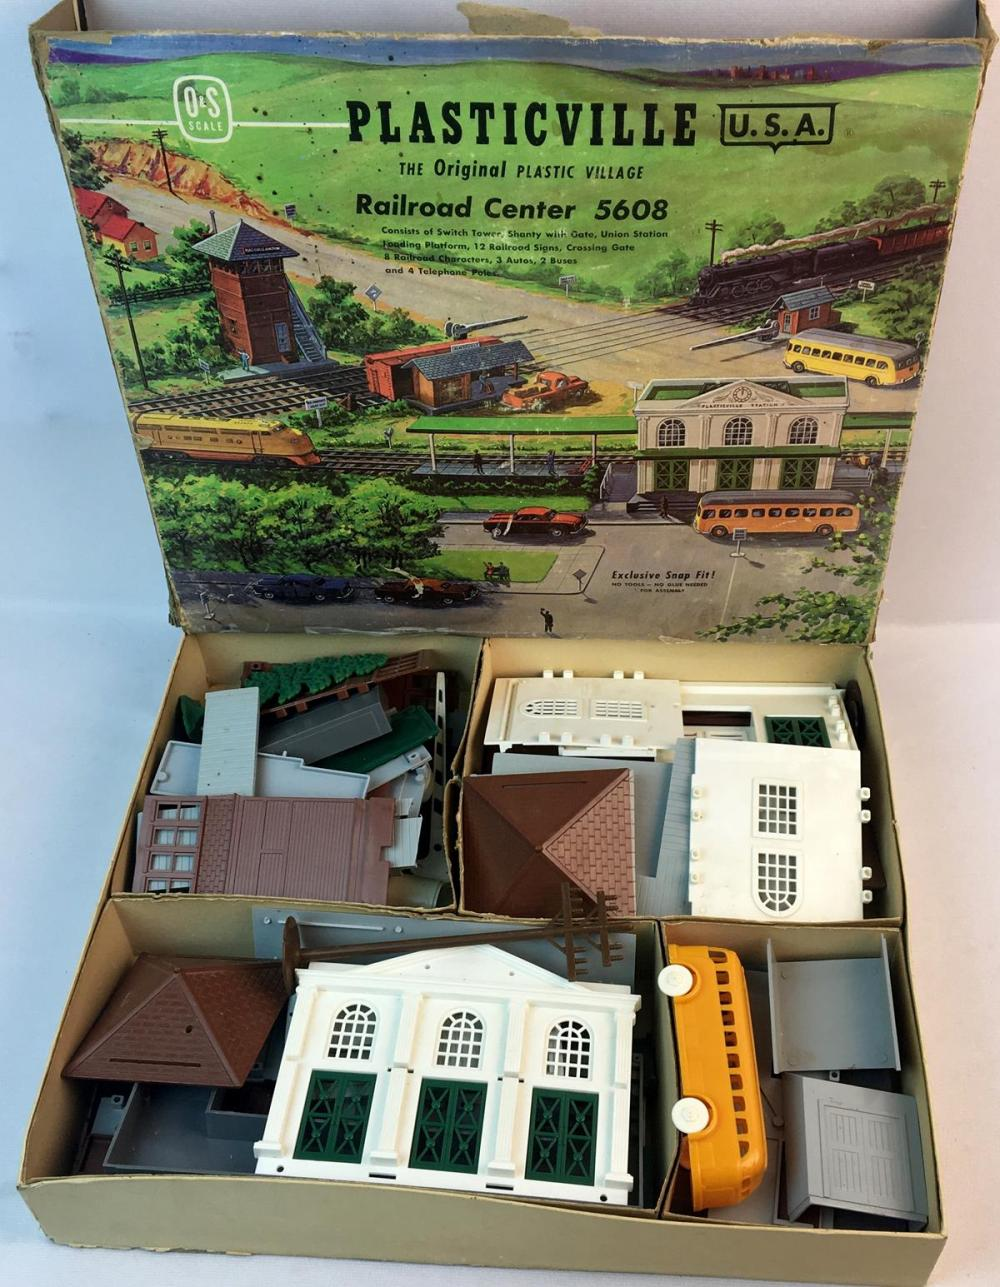 Vintage 1950's Plasticville Railroad Center #5608 O&S Scale Bachmann Bros Inc. w/ Box